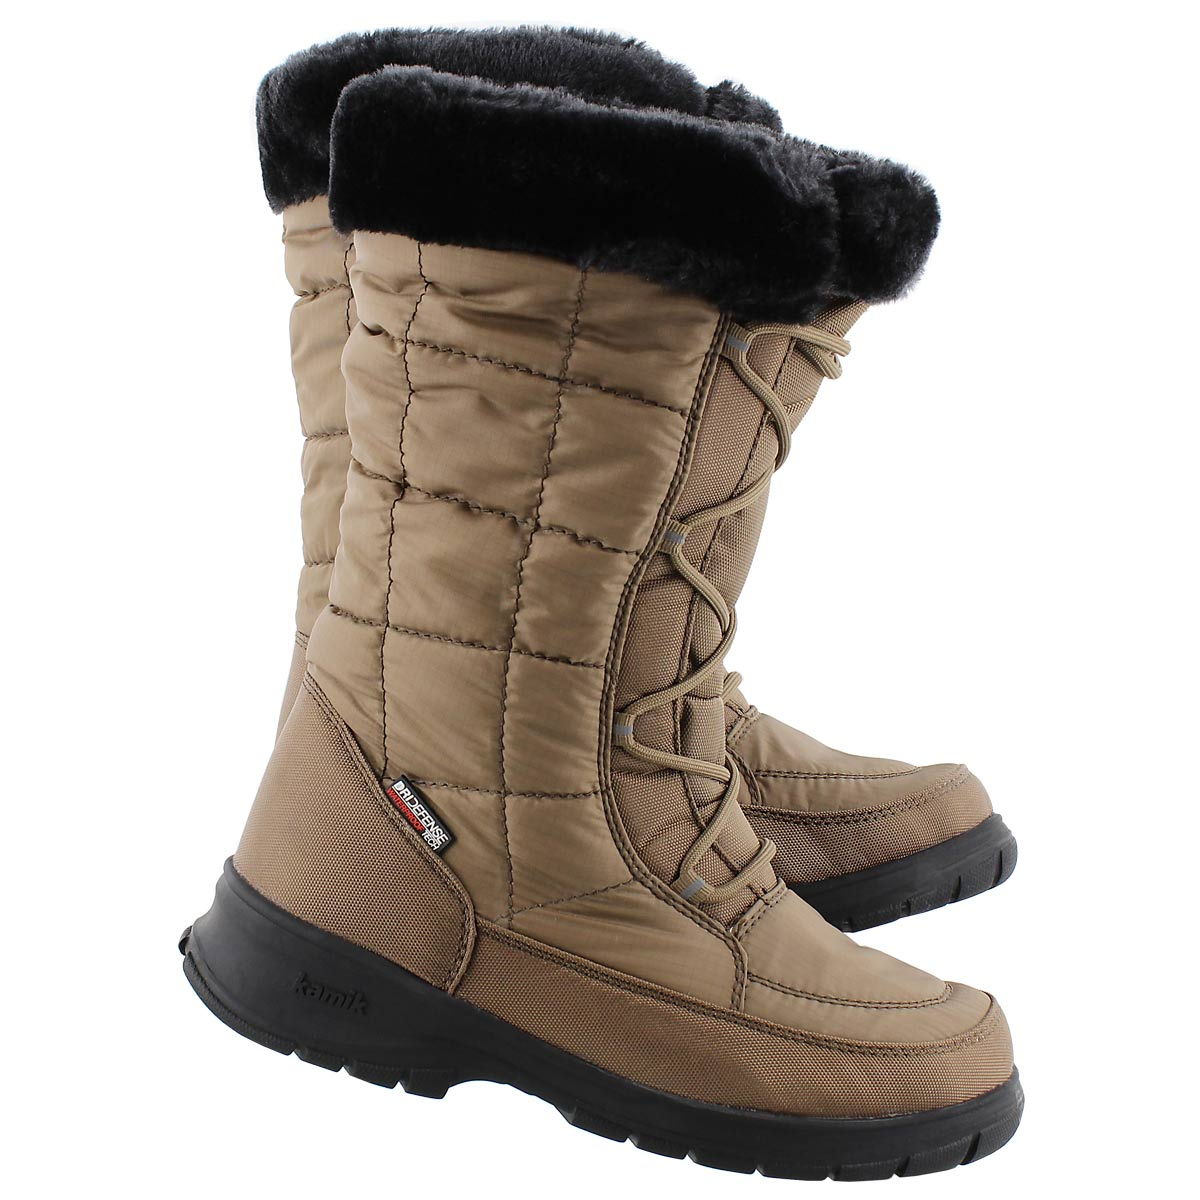 Womens Wide Width Winter Snow Boots | Santa Barbara Institute for ...